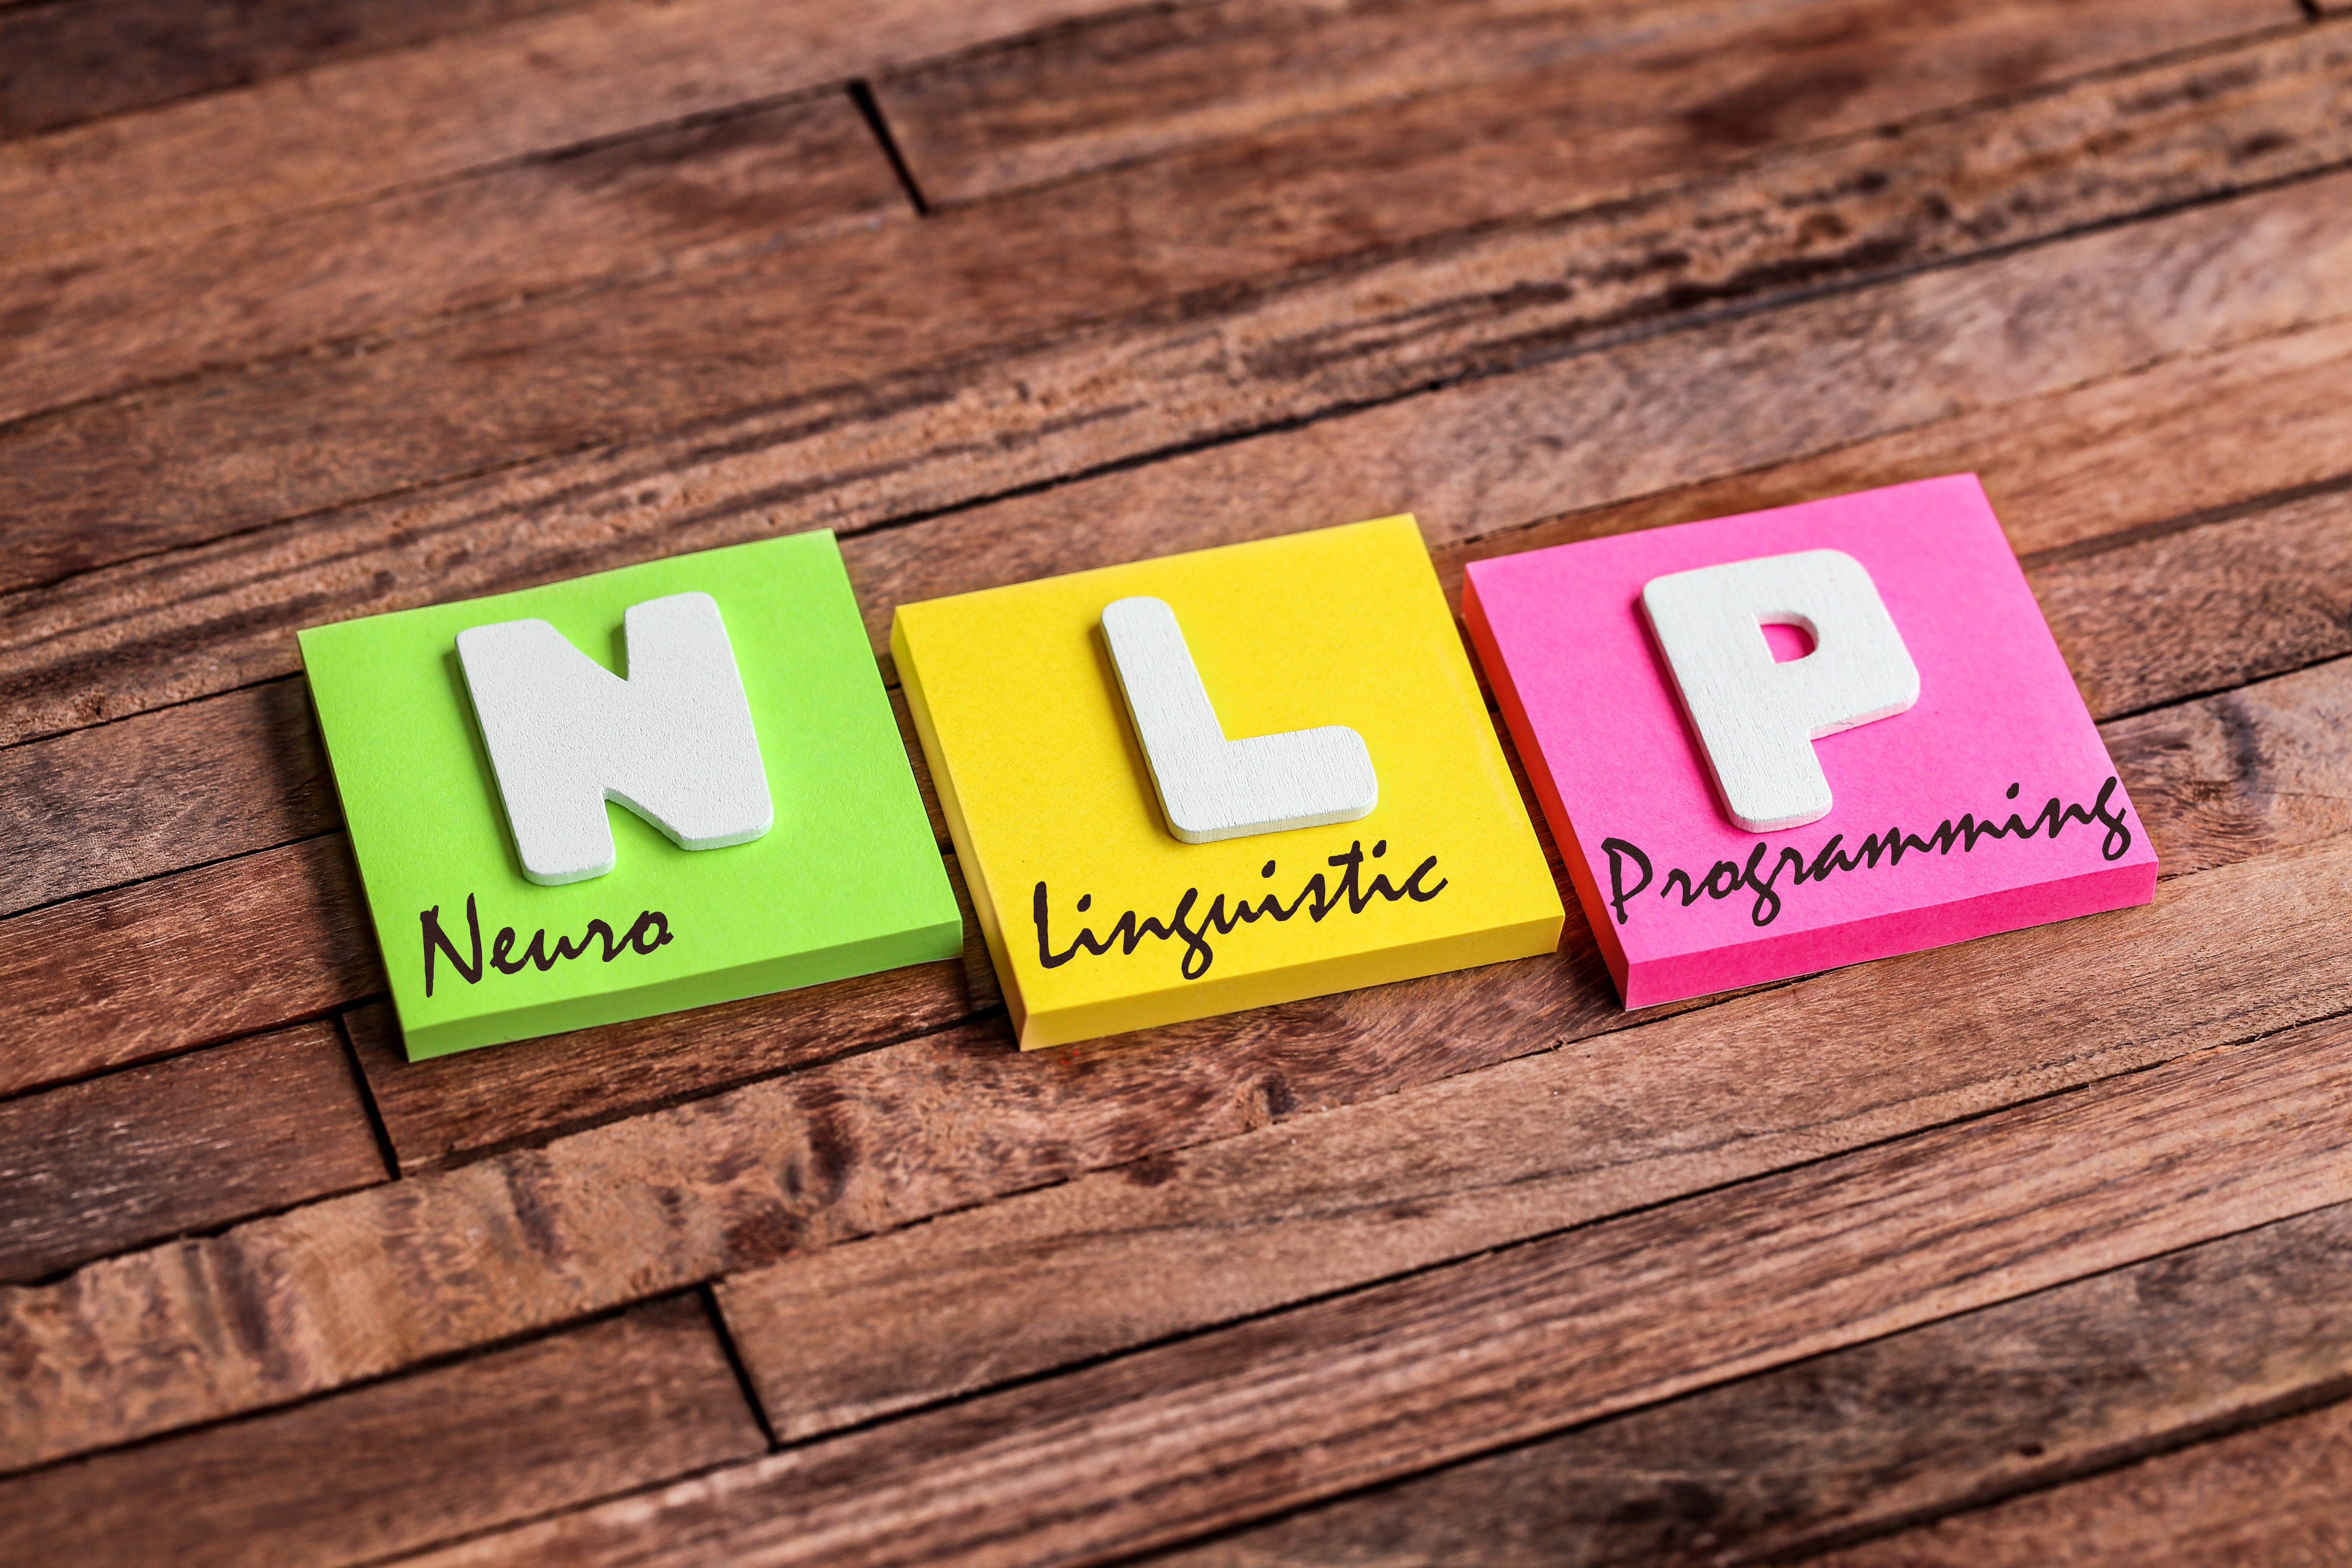 Neuro Linguistic Programming Master Class Part 1  Introduction, Goal Setting, Perception and Reality